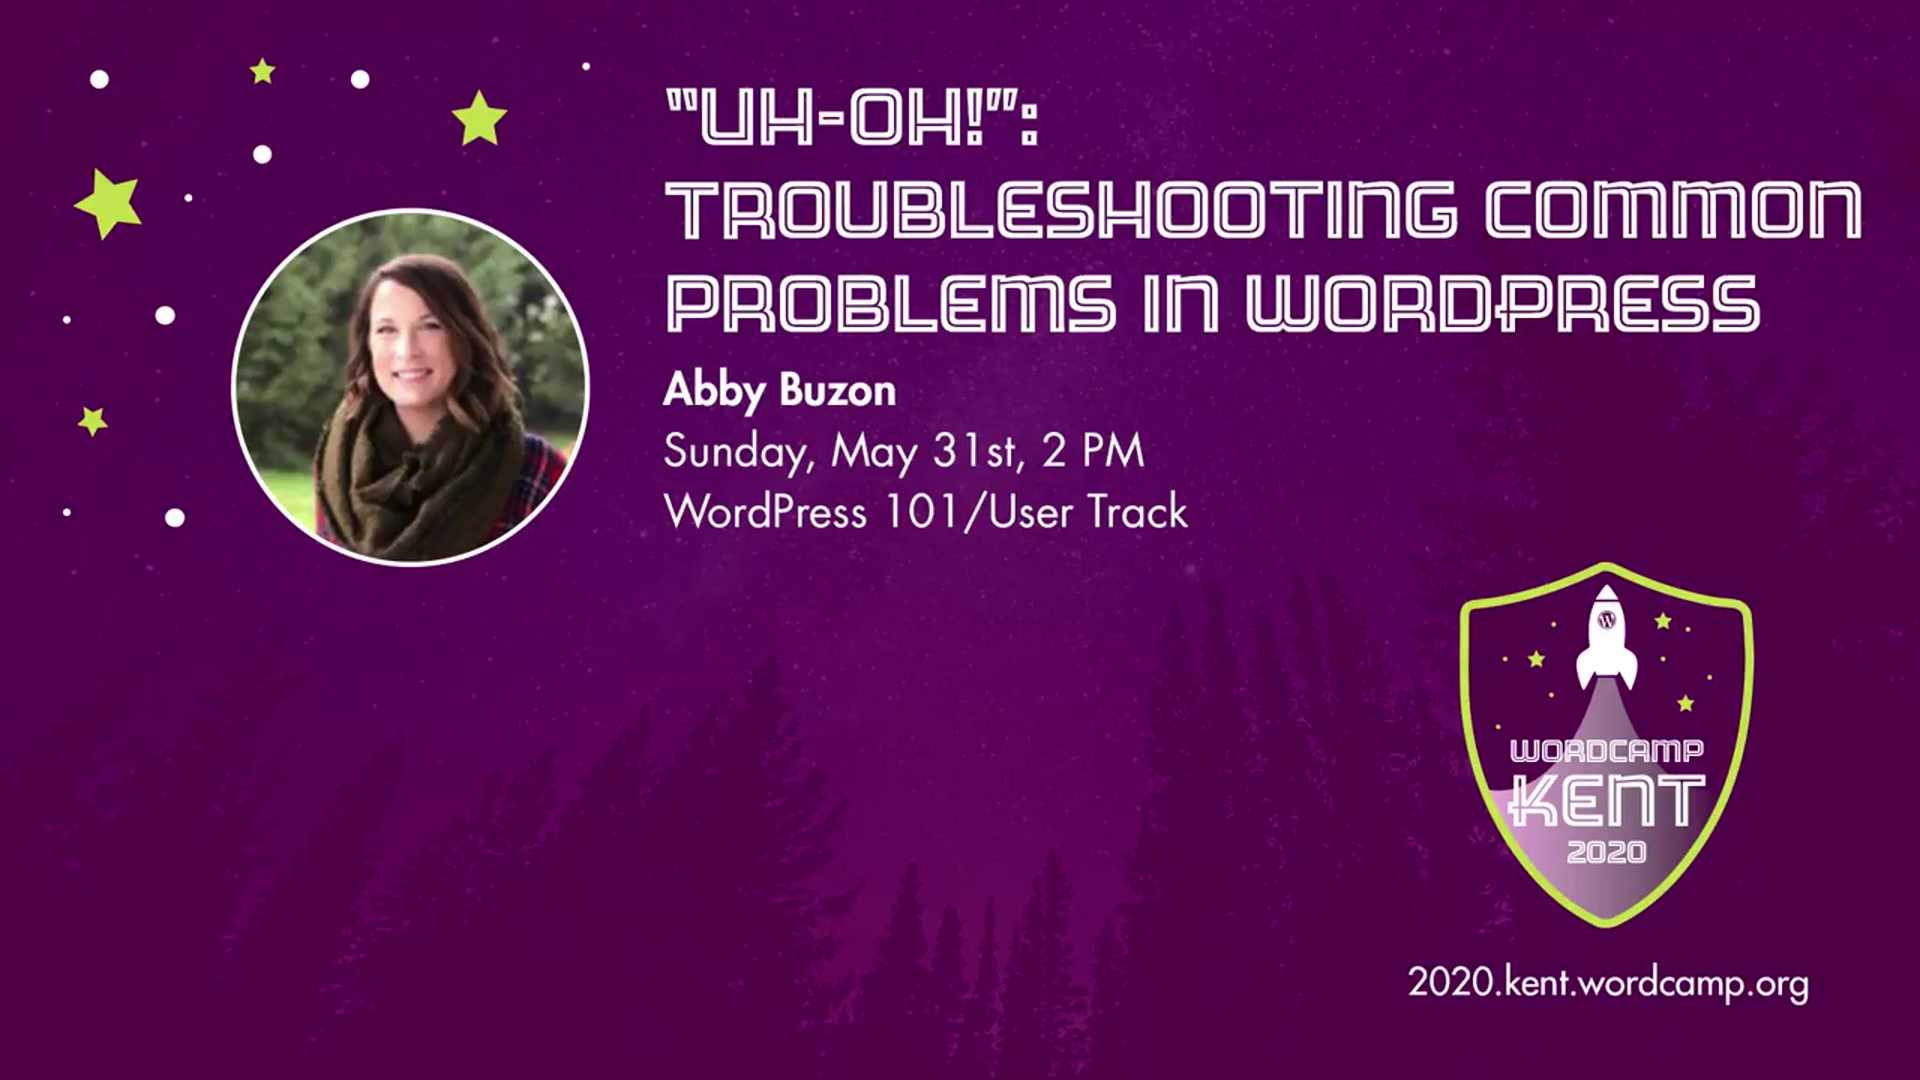 Abby Buzon: Troubleshooting Common Problems in WordPress